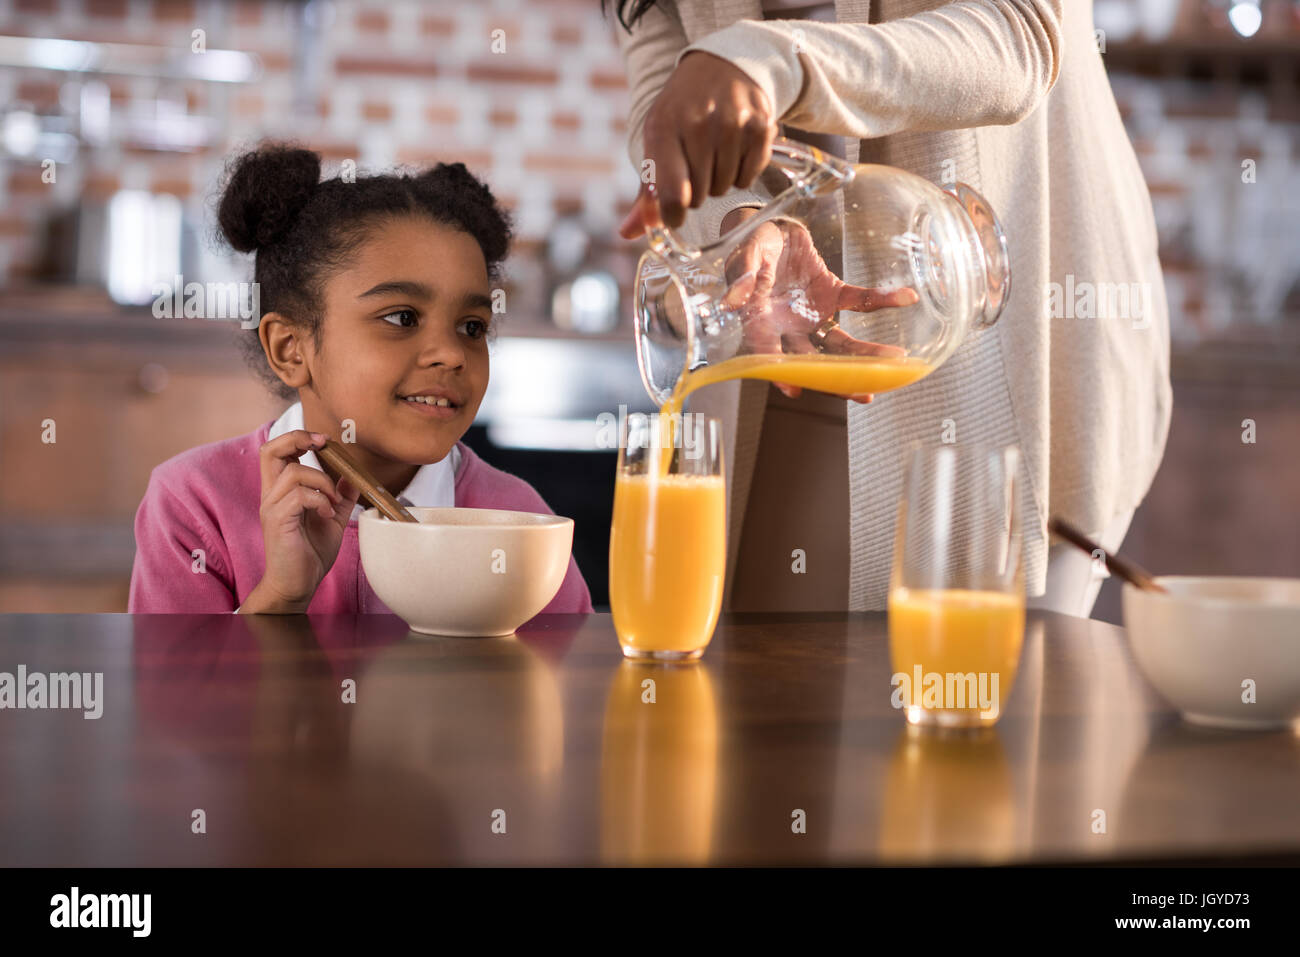 mother pouring juice into daughter's glass during breakfast at home - Stock Image